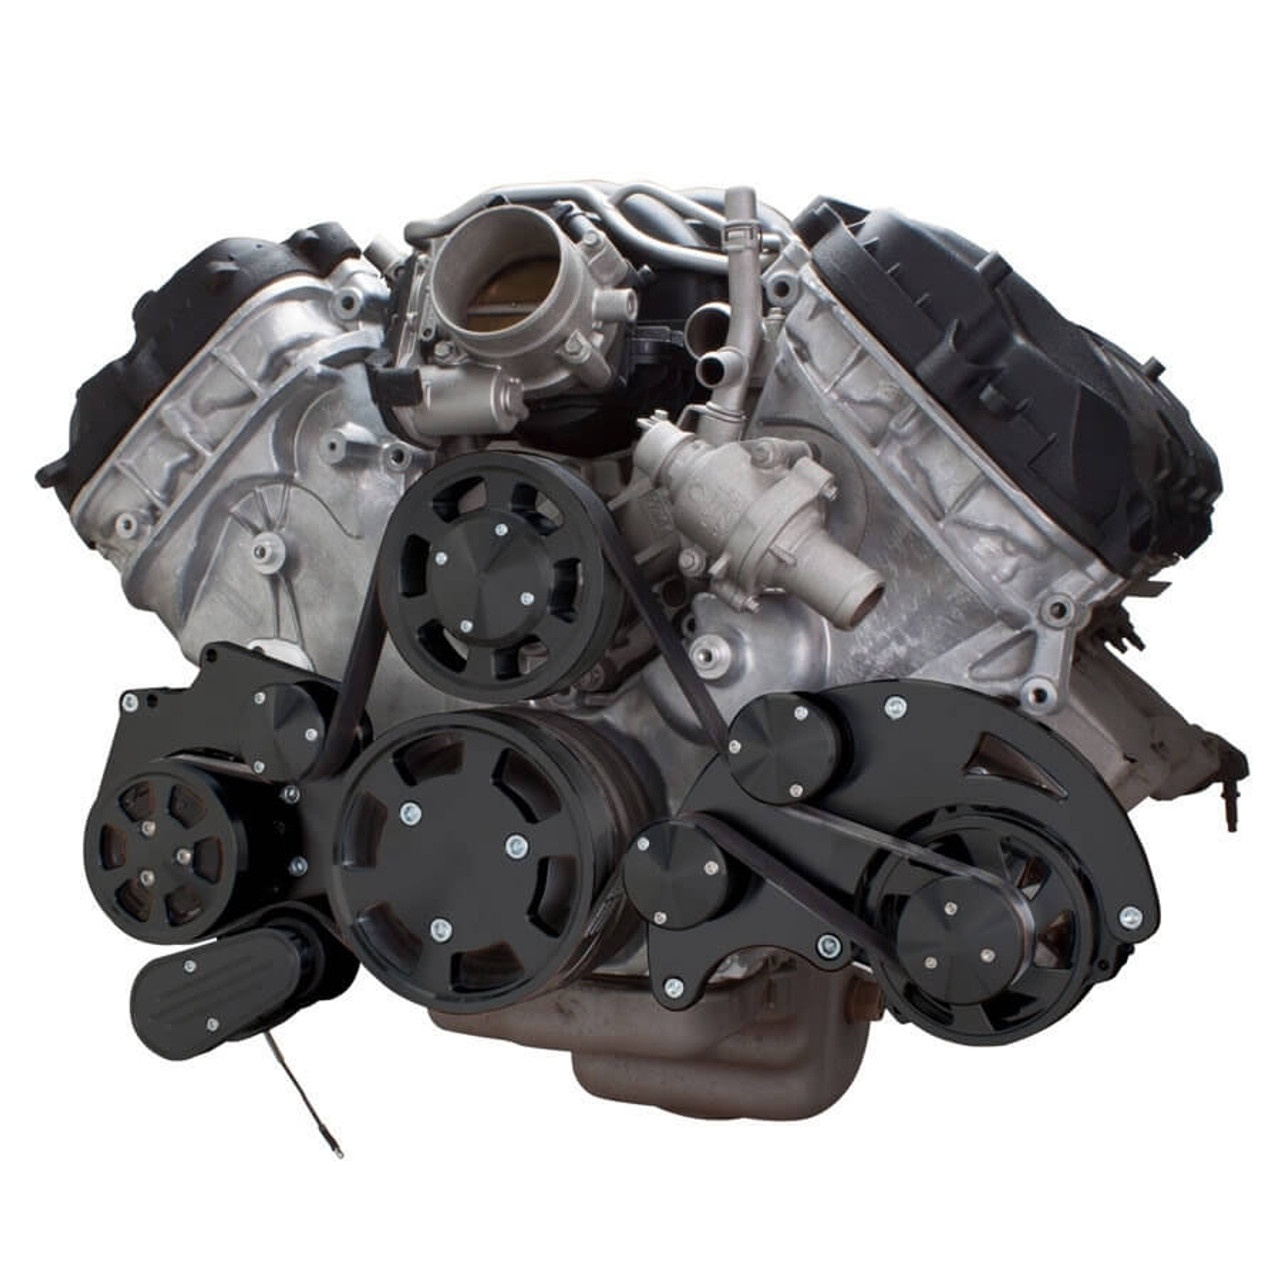 stealth black serpentine system for ford coyote 5 0 ac alternator  [ 900 x 900 Pixel ]